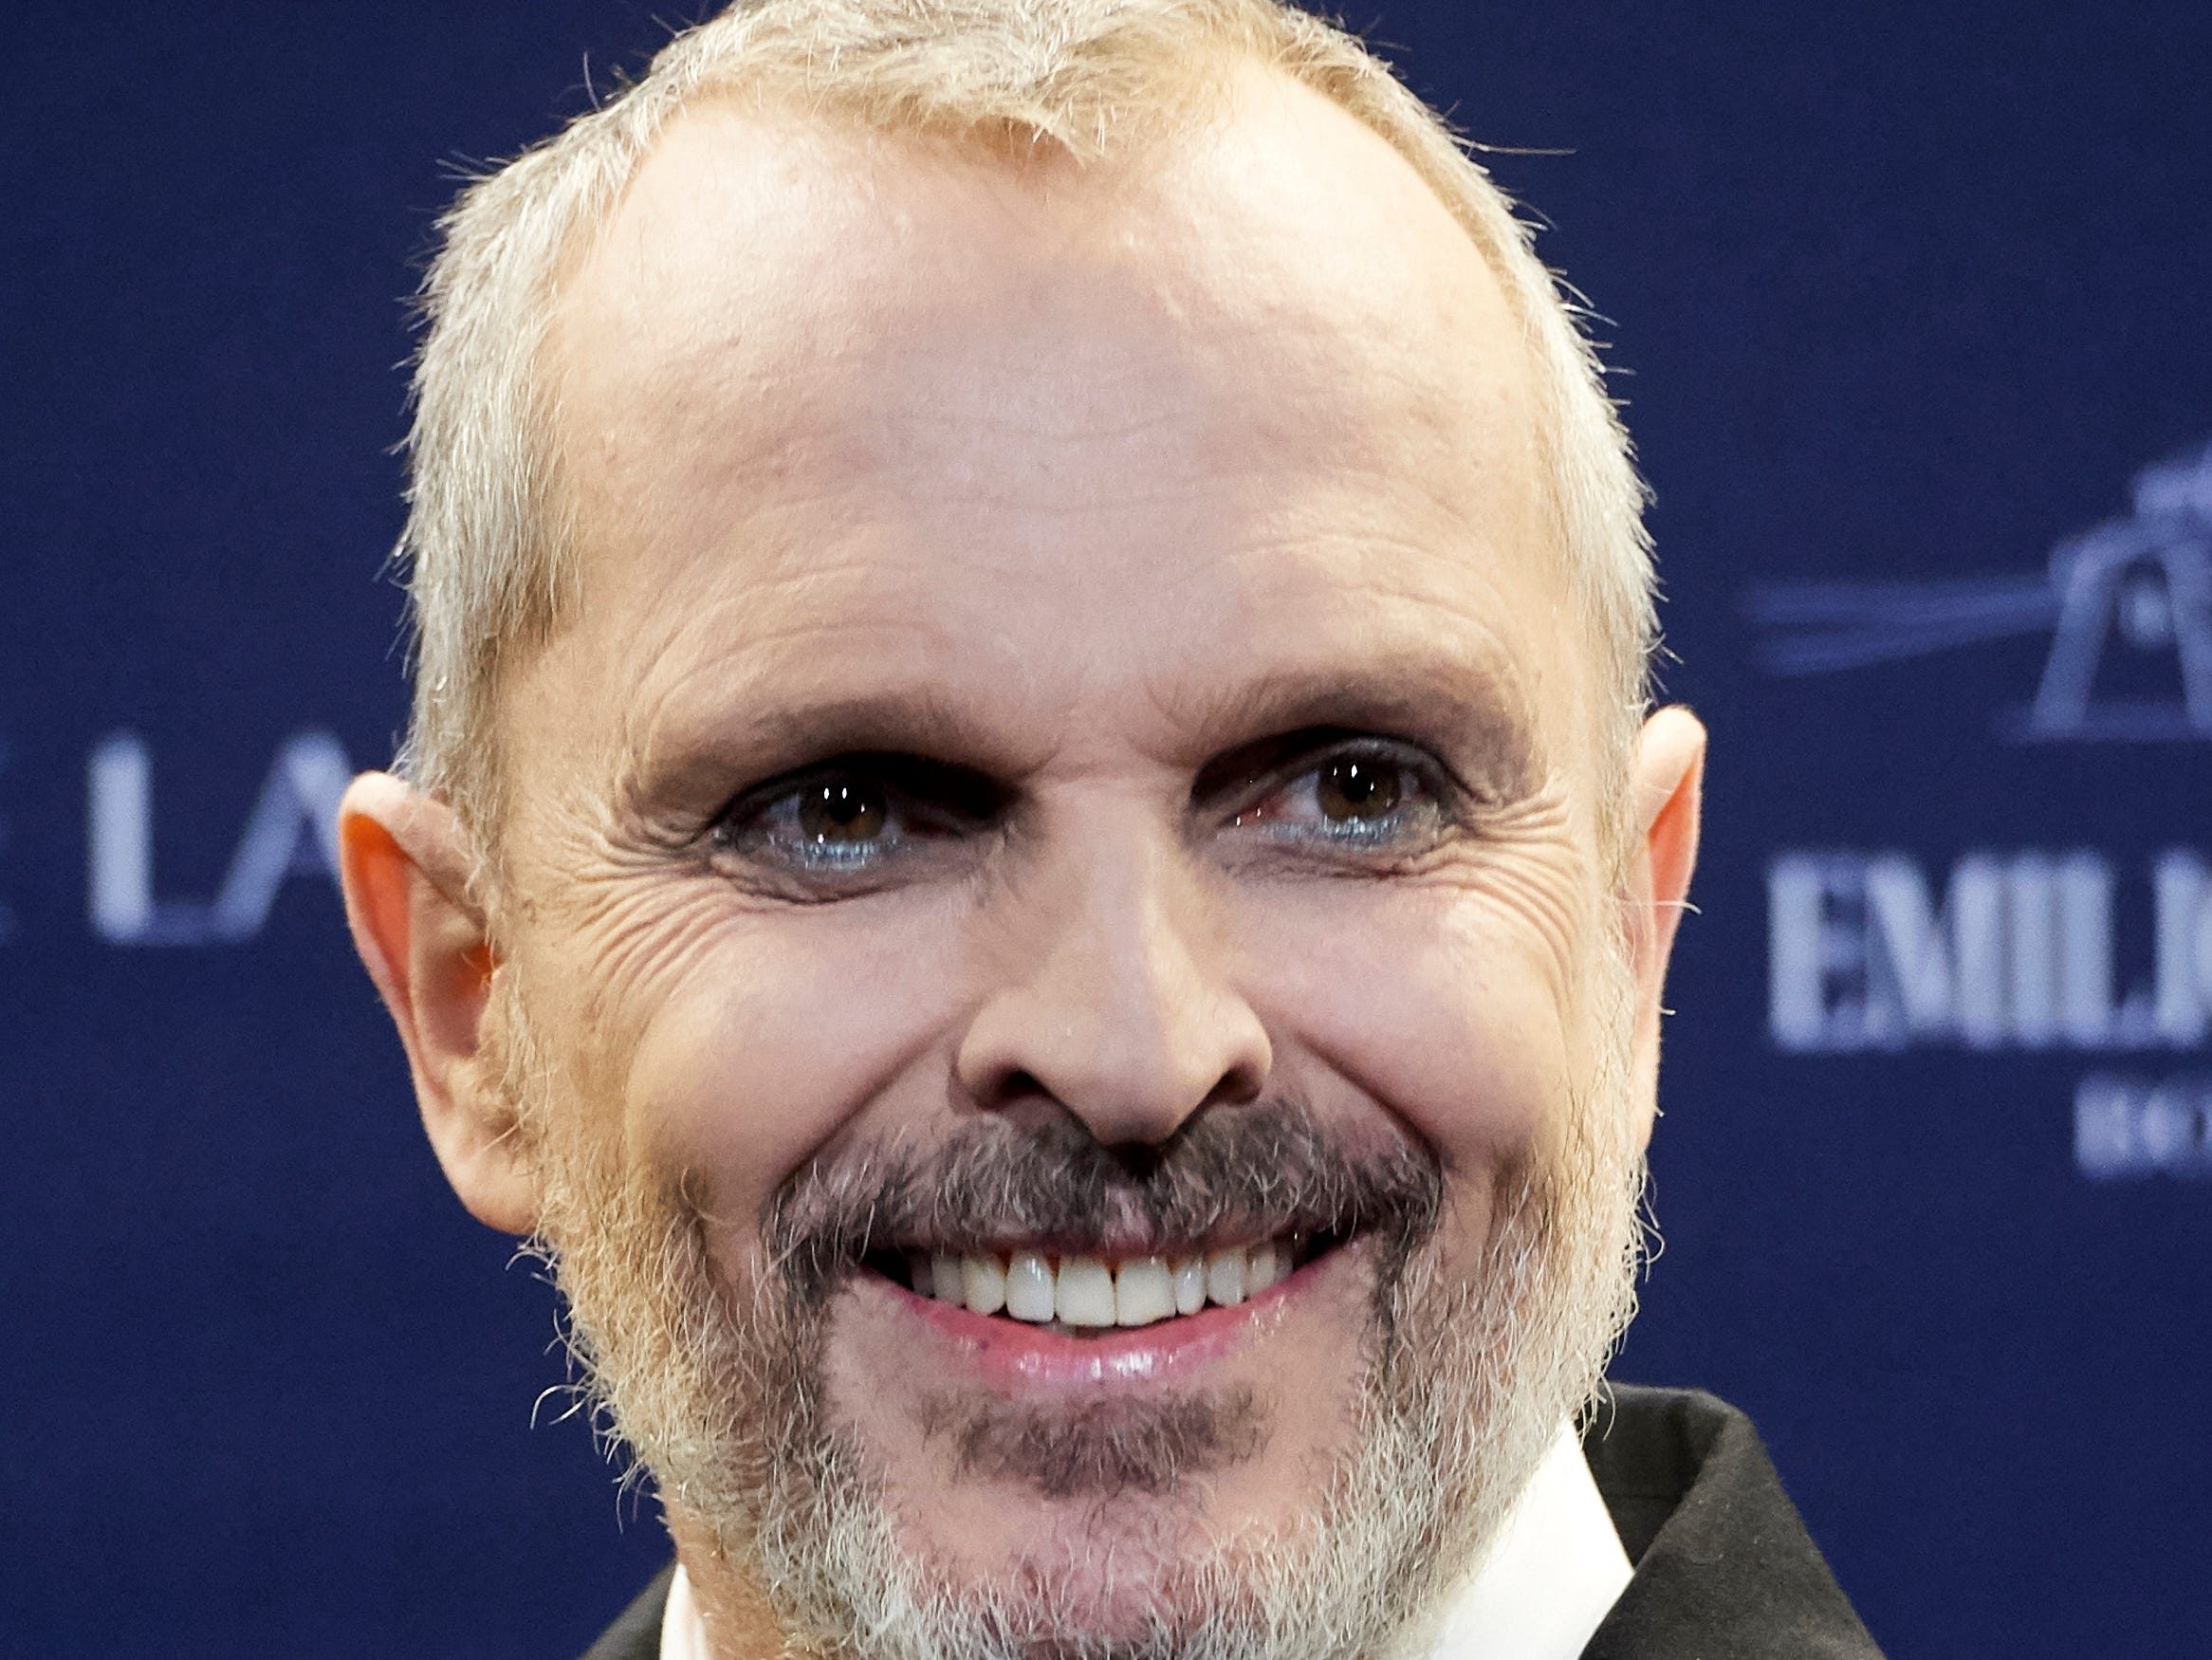 Singer Miguel Bose attends an event at the Real Academia de Bellas Artes de San Fernando Museum on Oct. 9, 2018 in Madrid, Spain.